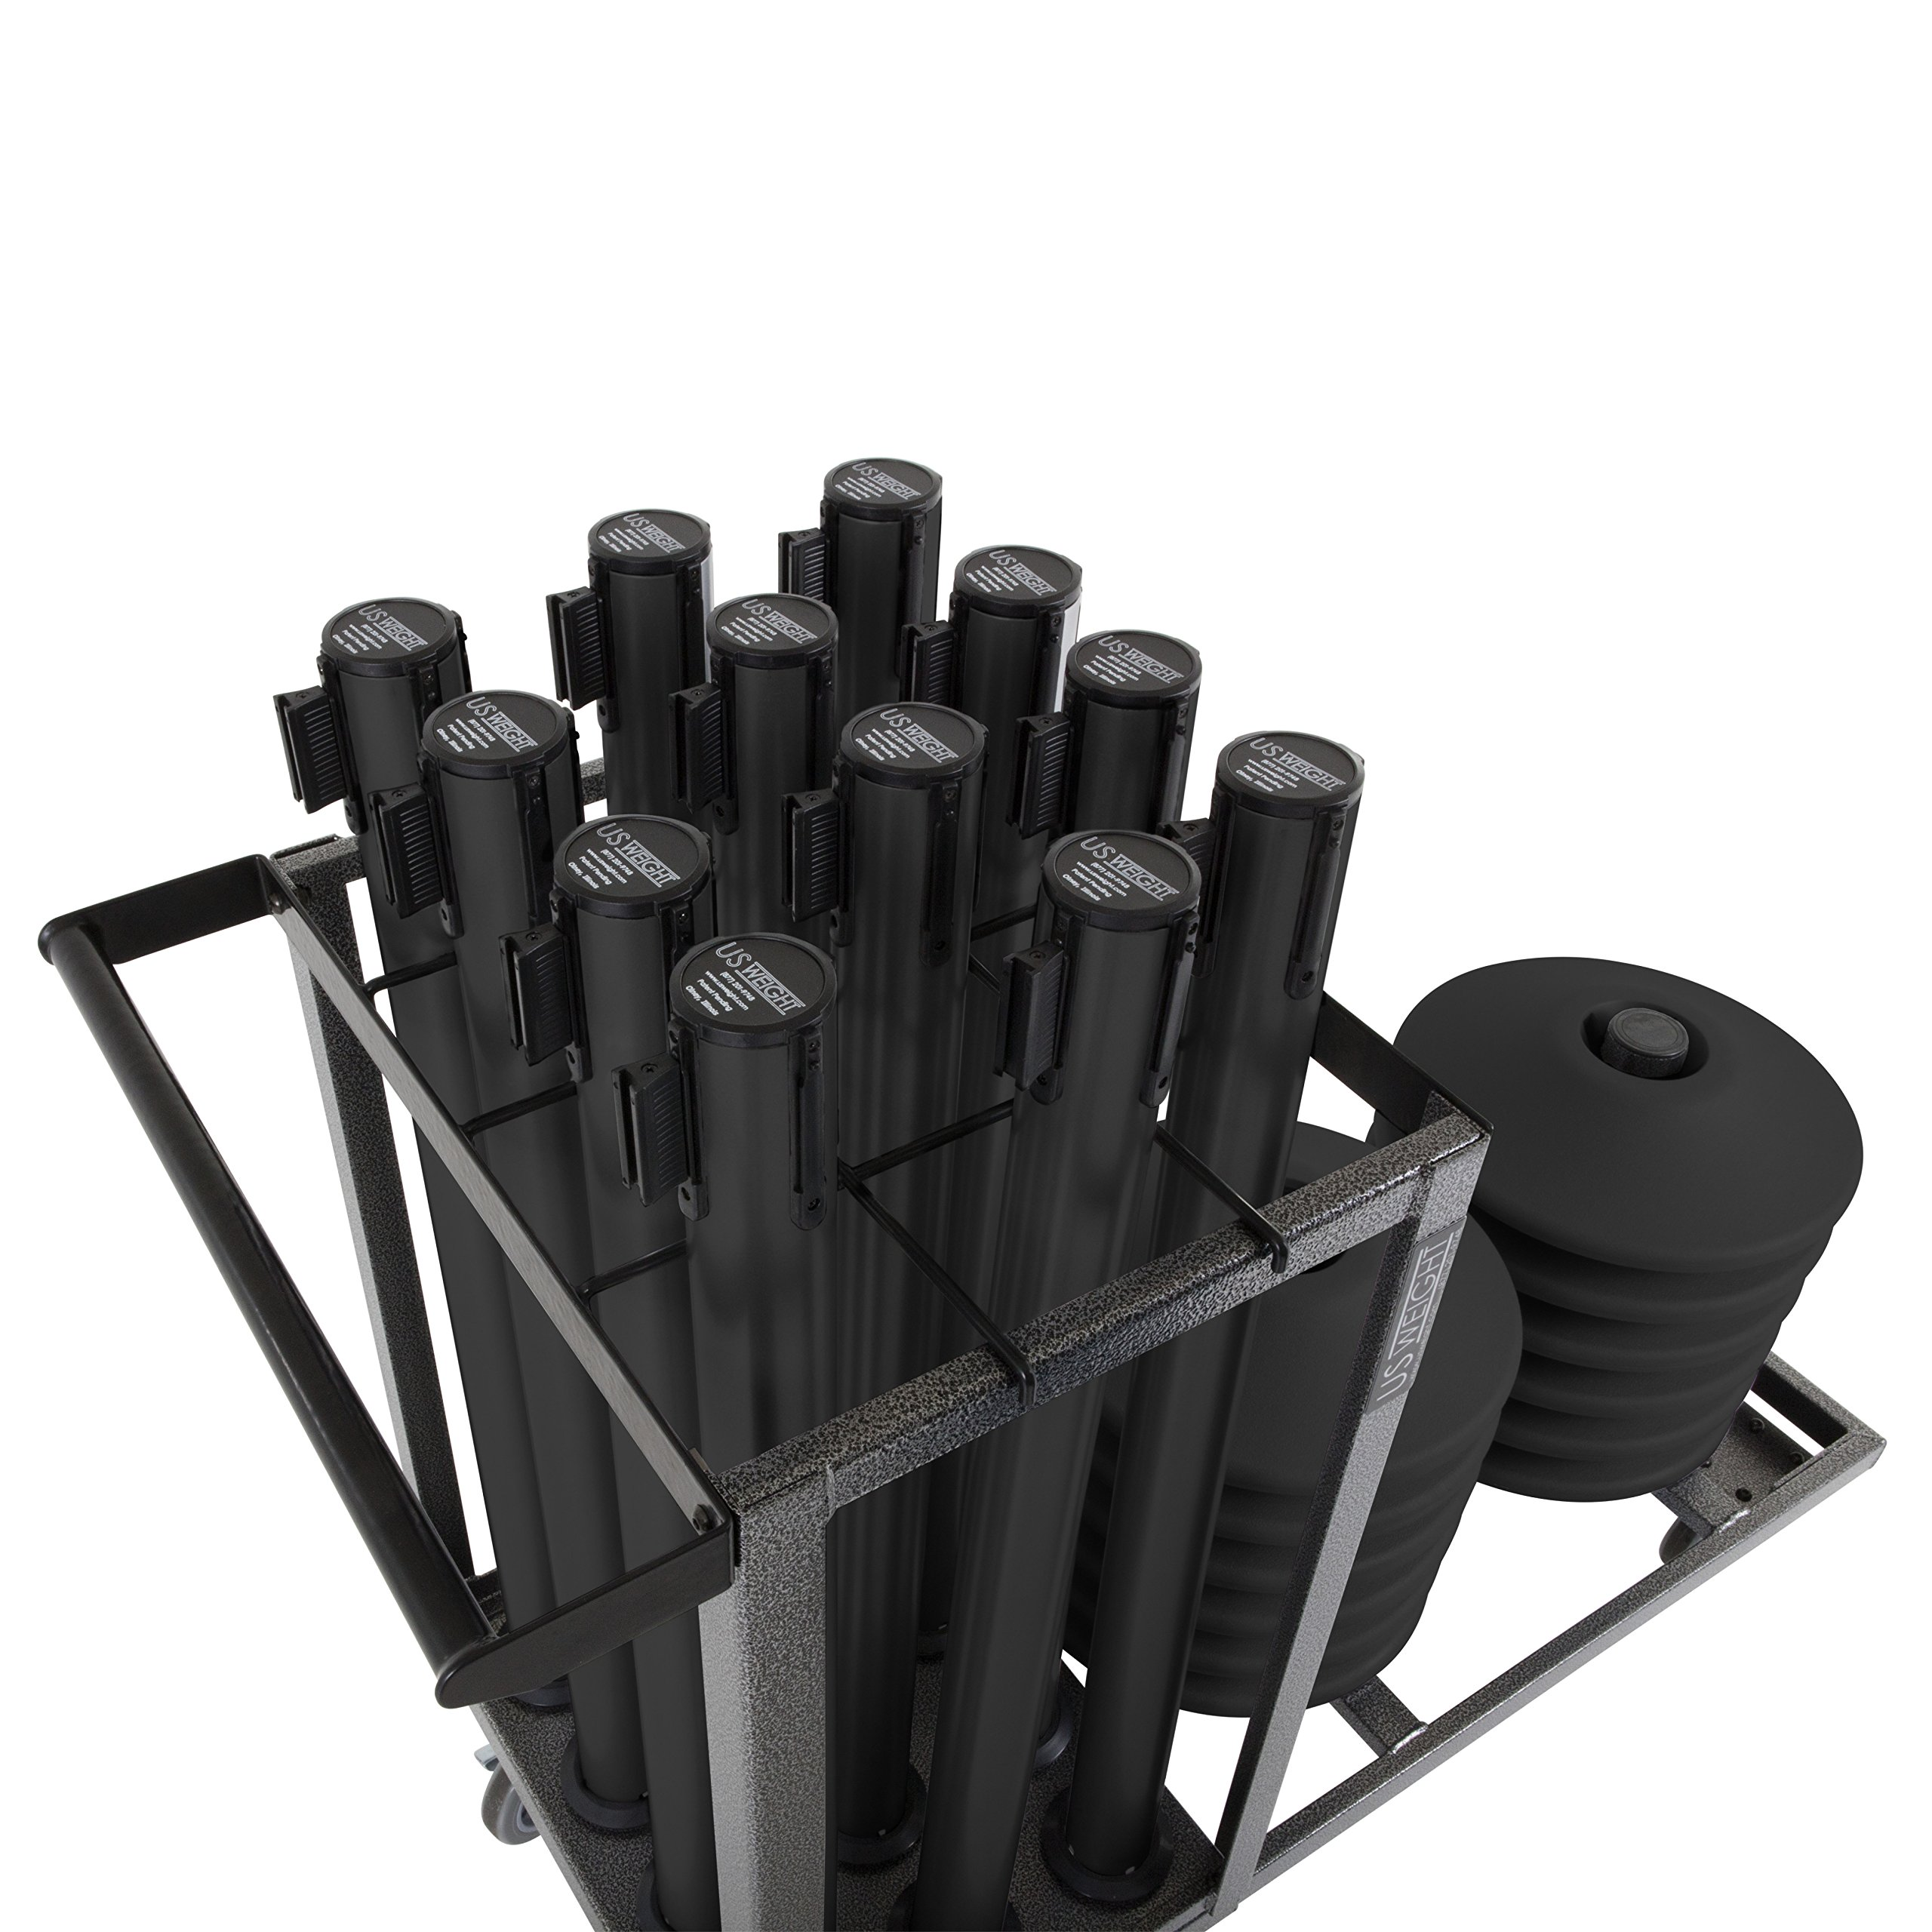 US Weight Statesman Stanchion Cart Kit – 12 Premium Black Steel Stanchions with Cart by US Weight (Image #10)